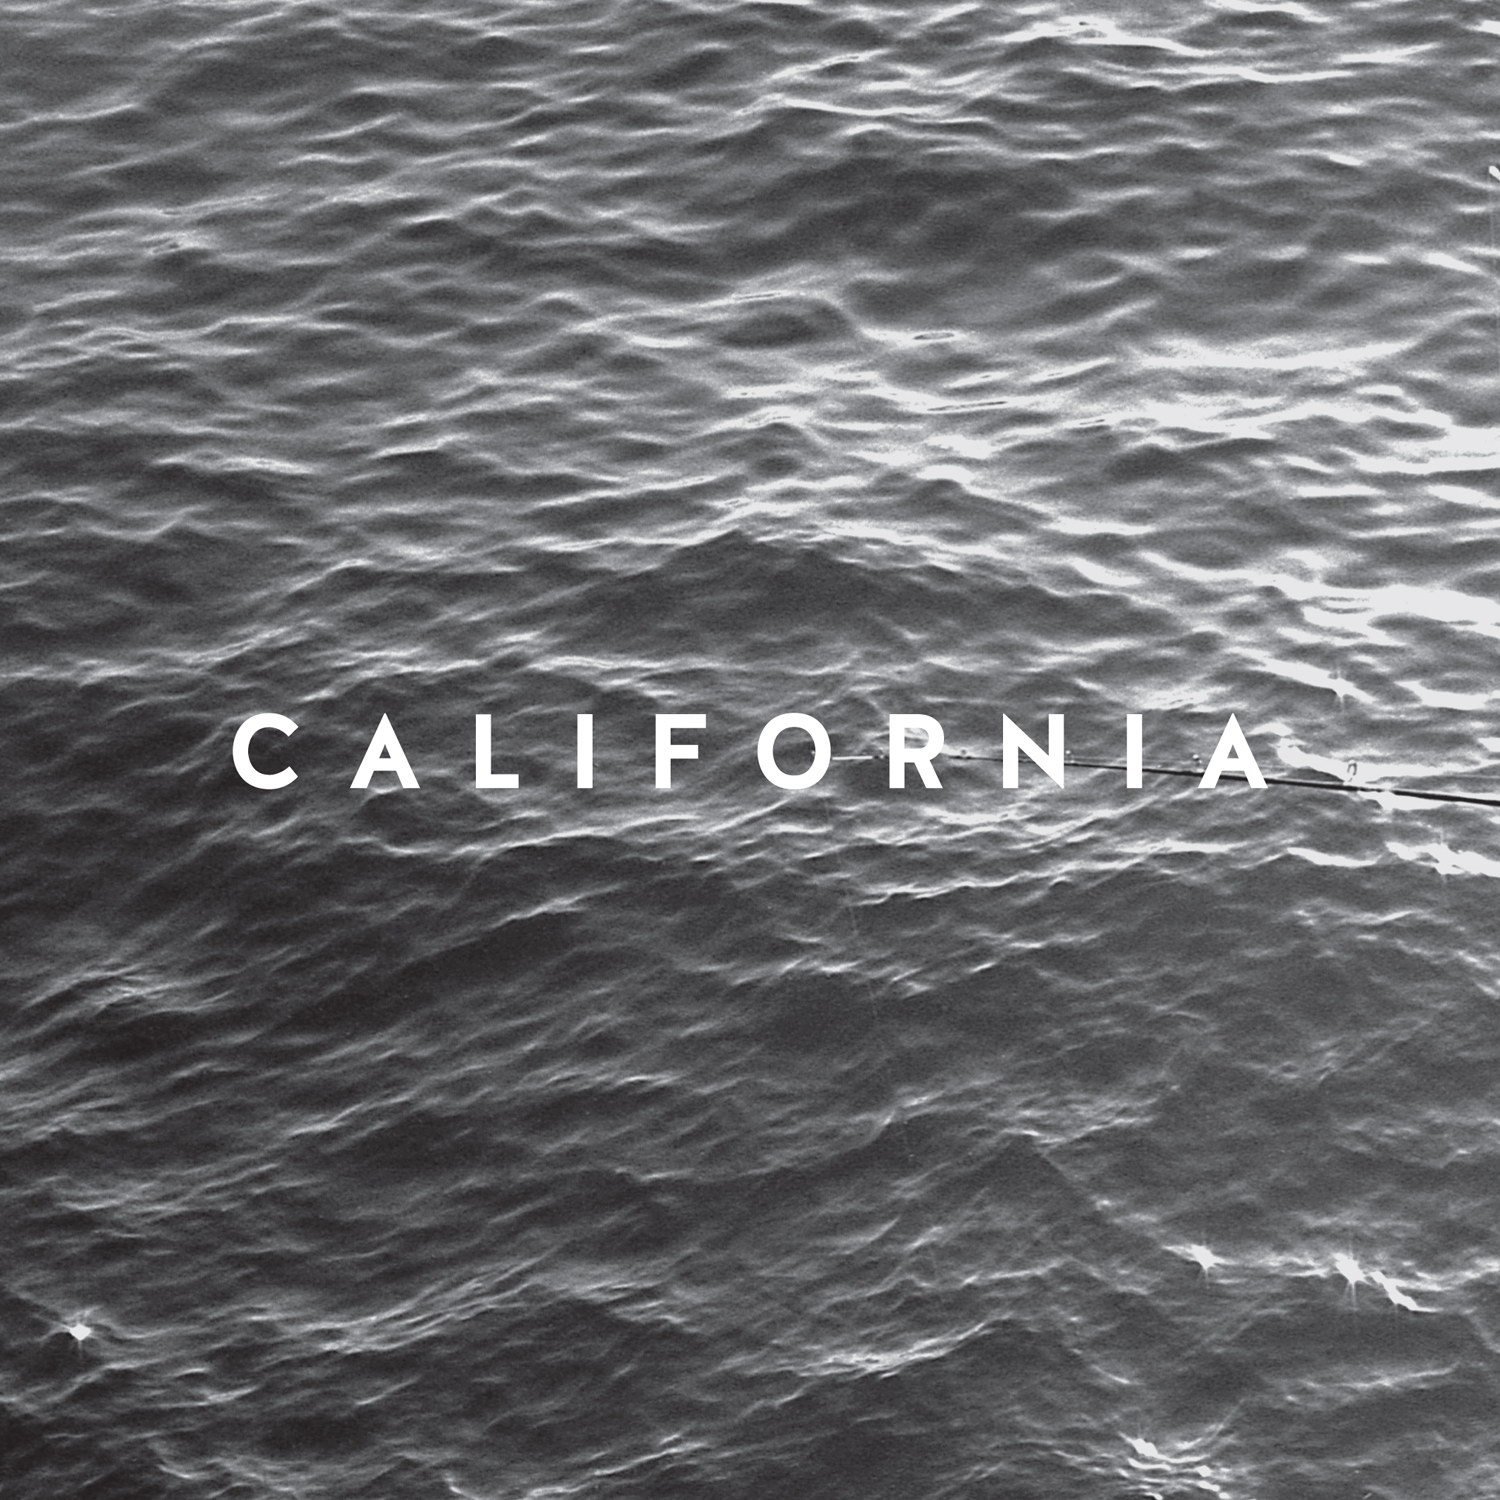 """RECORD STORE DAY NEWS:  Frontier Records Announces Ltd. Ed. 7"""" Vinyl from Punk Supergroup California on Black Friday"""